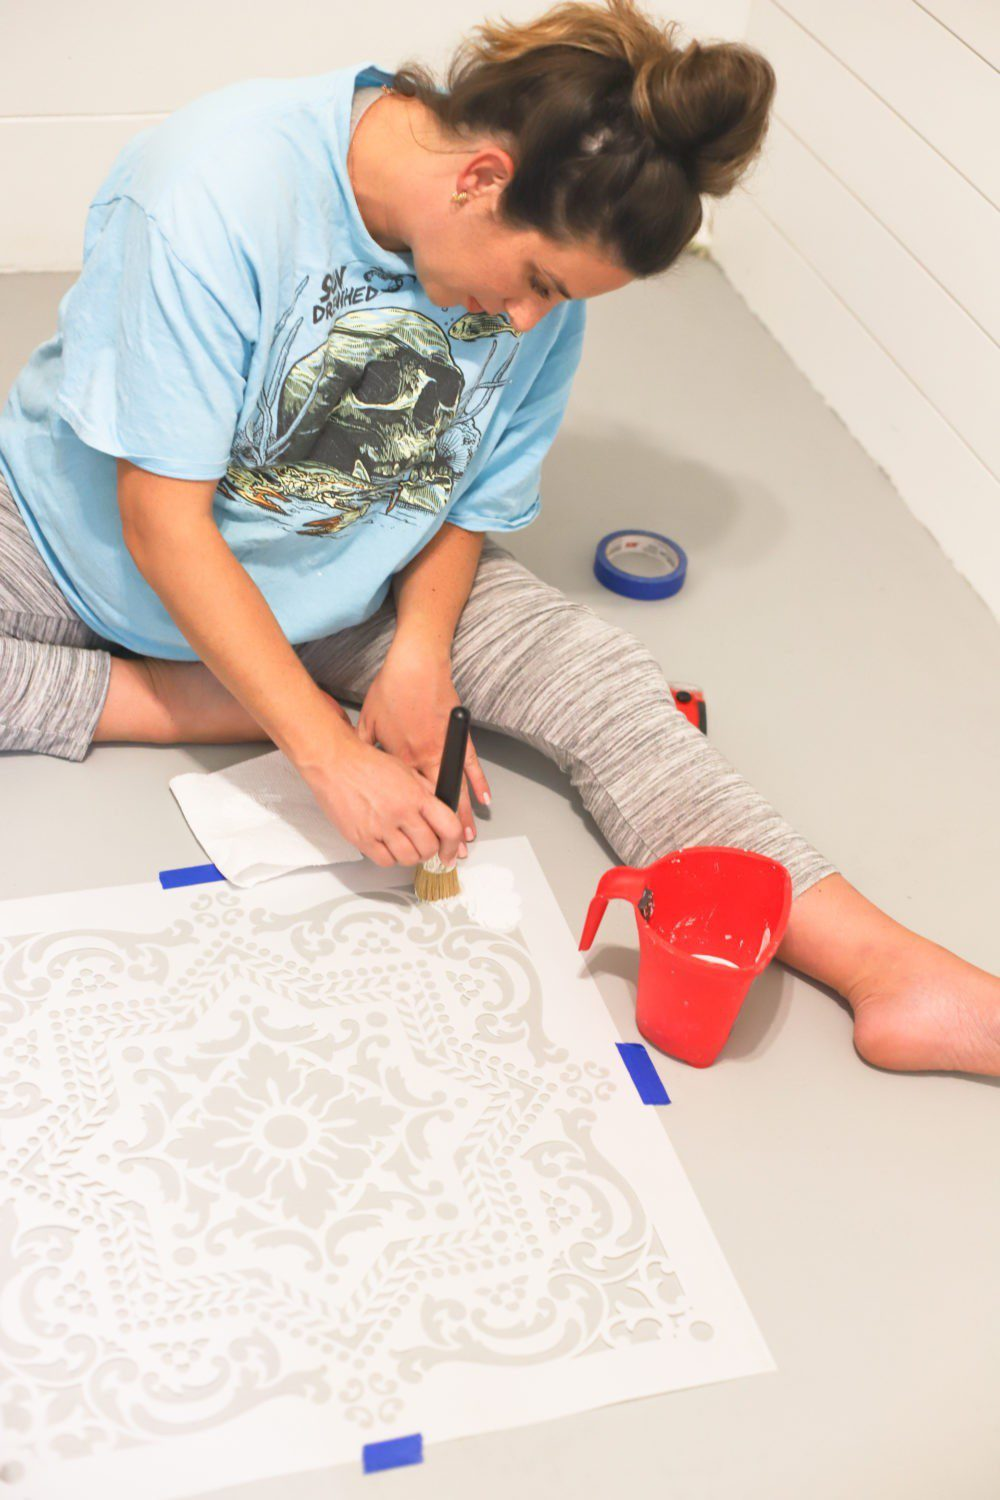 Laundry Room DIY: How to Paint a Cement Floor with Stencils | Laundry Room DIY: How to Paint a Cement Floor with Stencils by popular home decor blog, Fresh Mommy: image of a woman painting her cement floor.